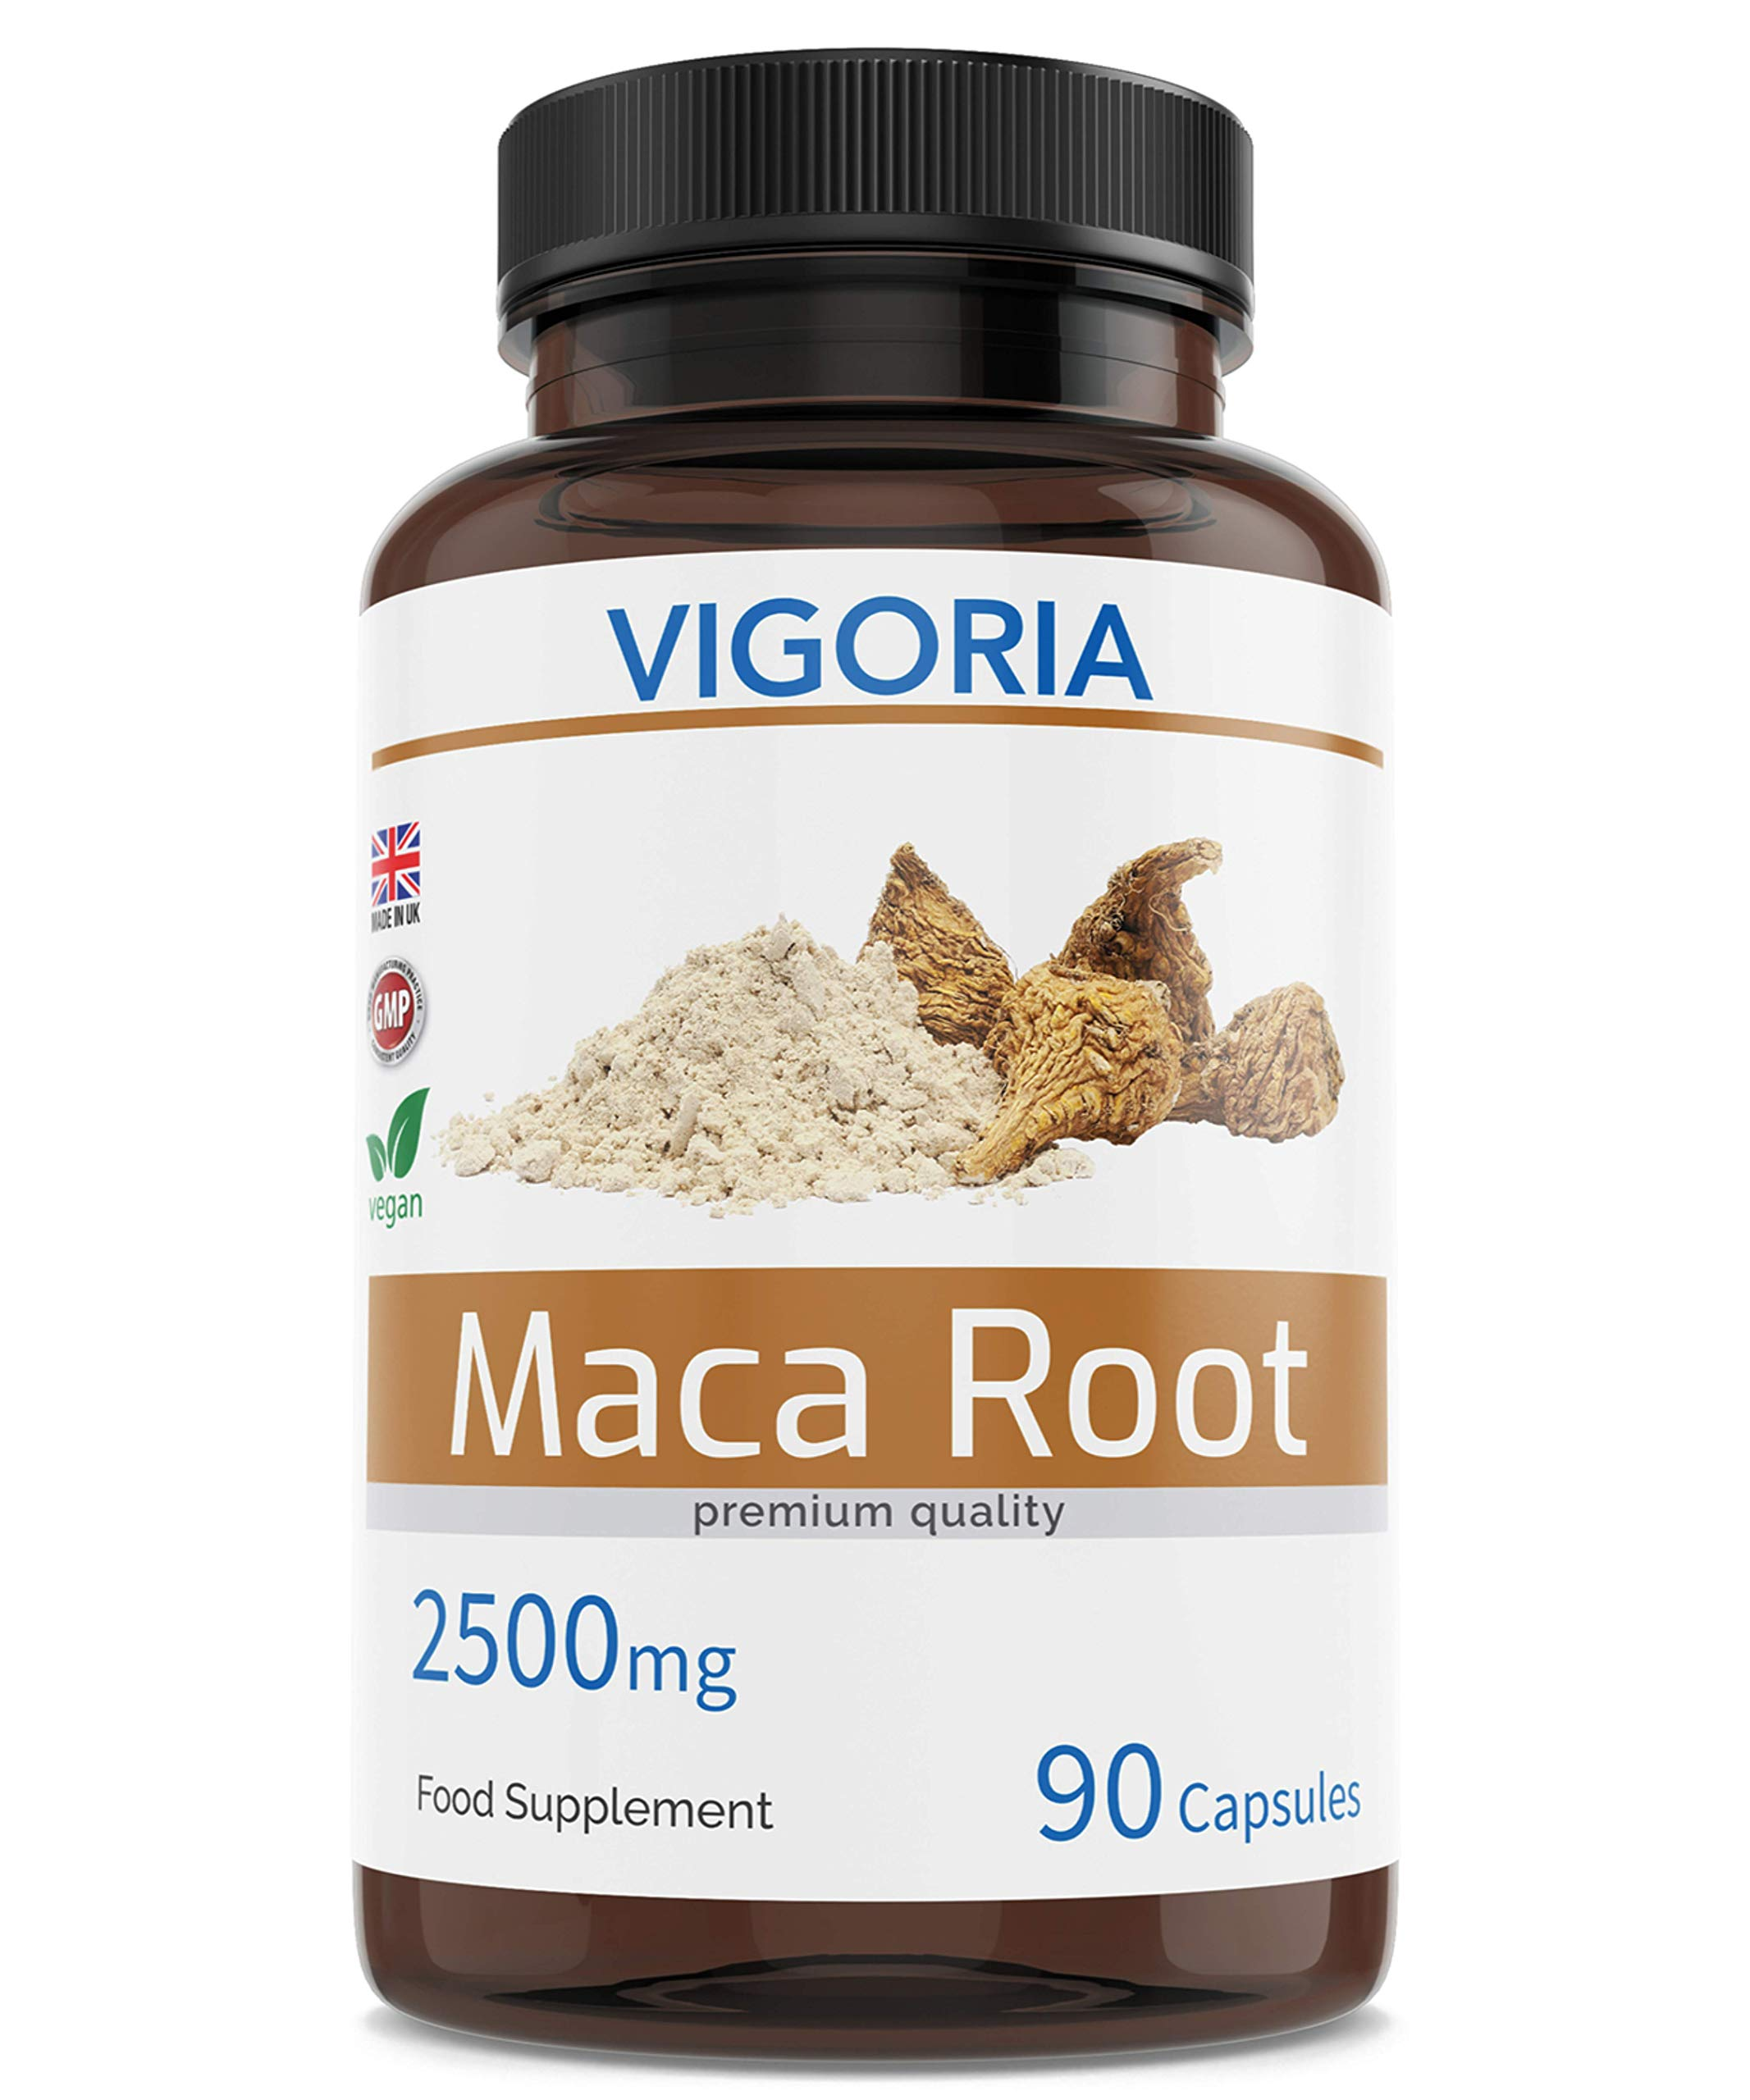 Maca for Energy Performance and Vitality - Plant-Based Peruvian Superfood for Men and Women's Stamina - 2500 mg 90 Capsules - Natural 10:1 Root Powder Extract - Vegan - GMO-Free | UK Made